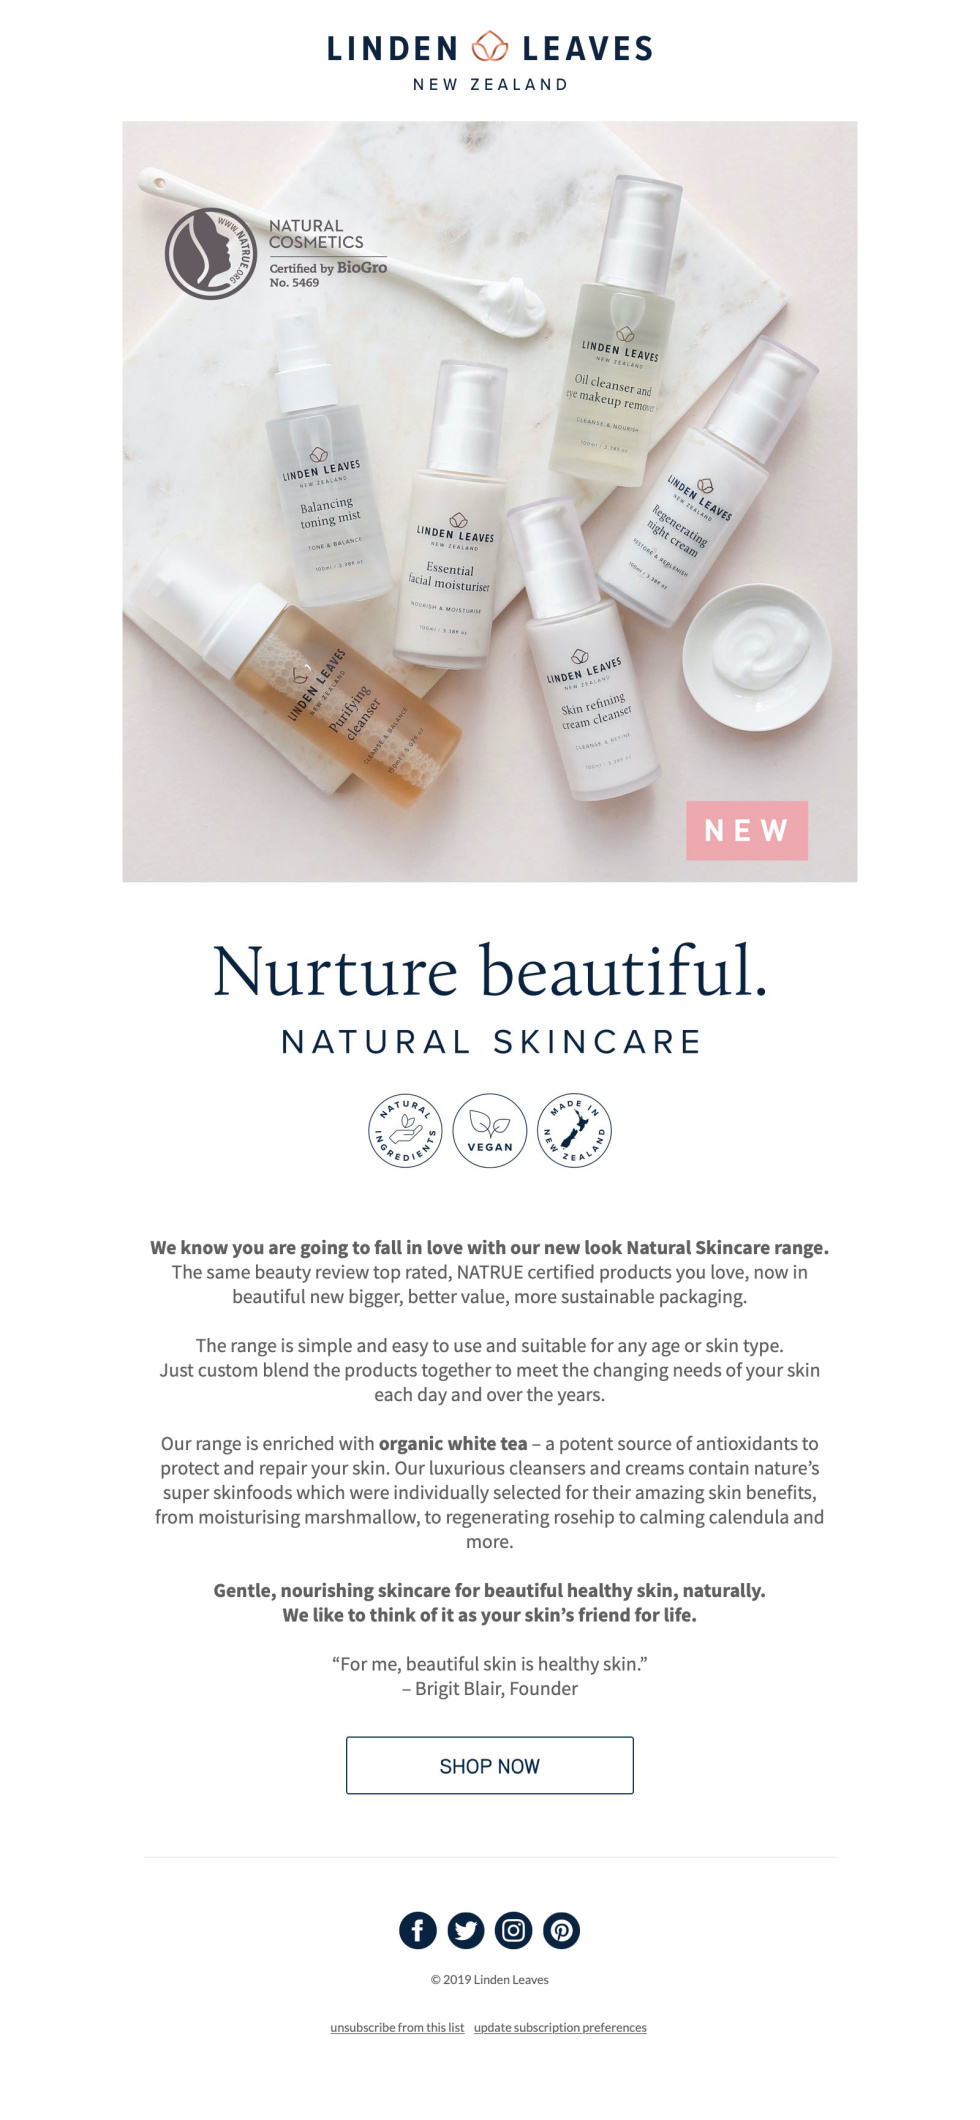 Image of Linden Leaves newsletter with the image of skin care products and the text nurture beautiful.